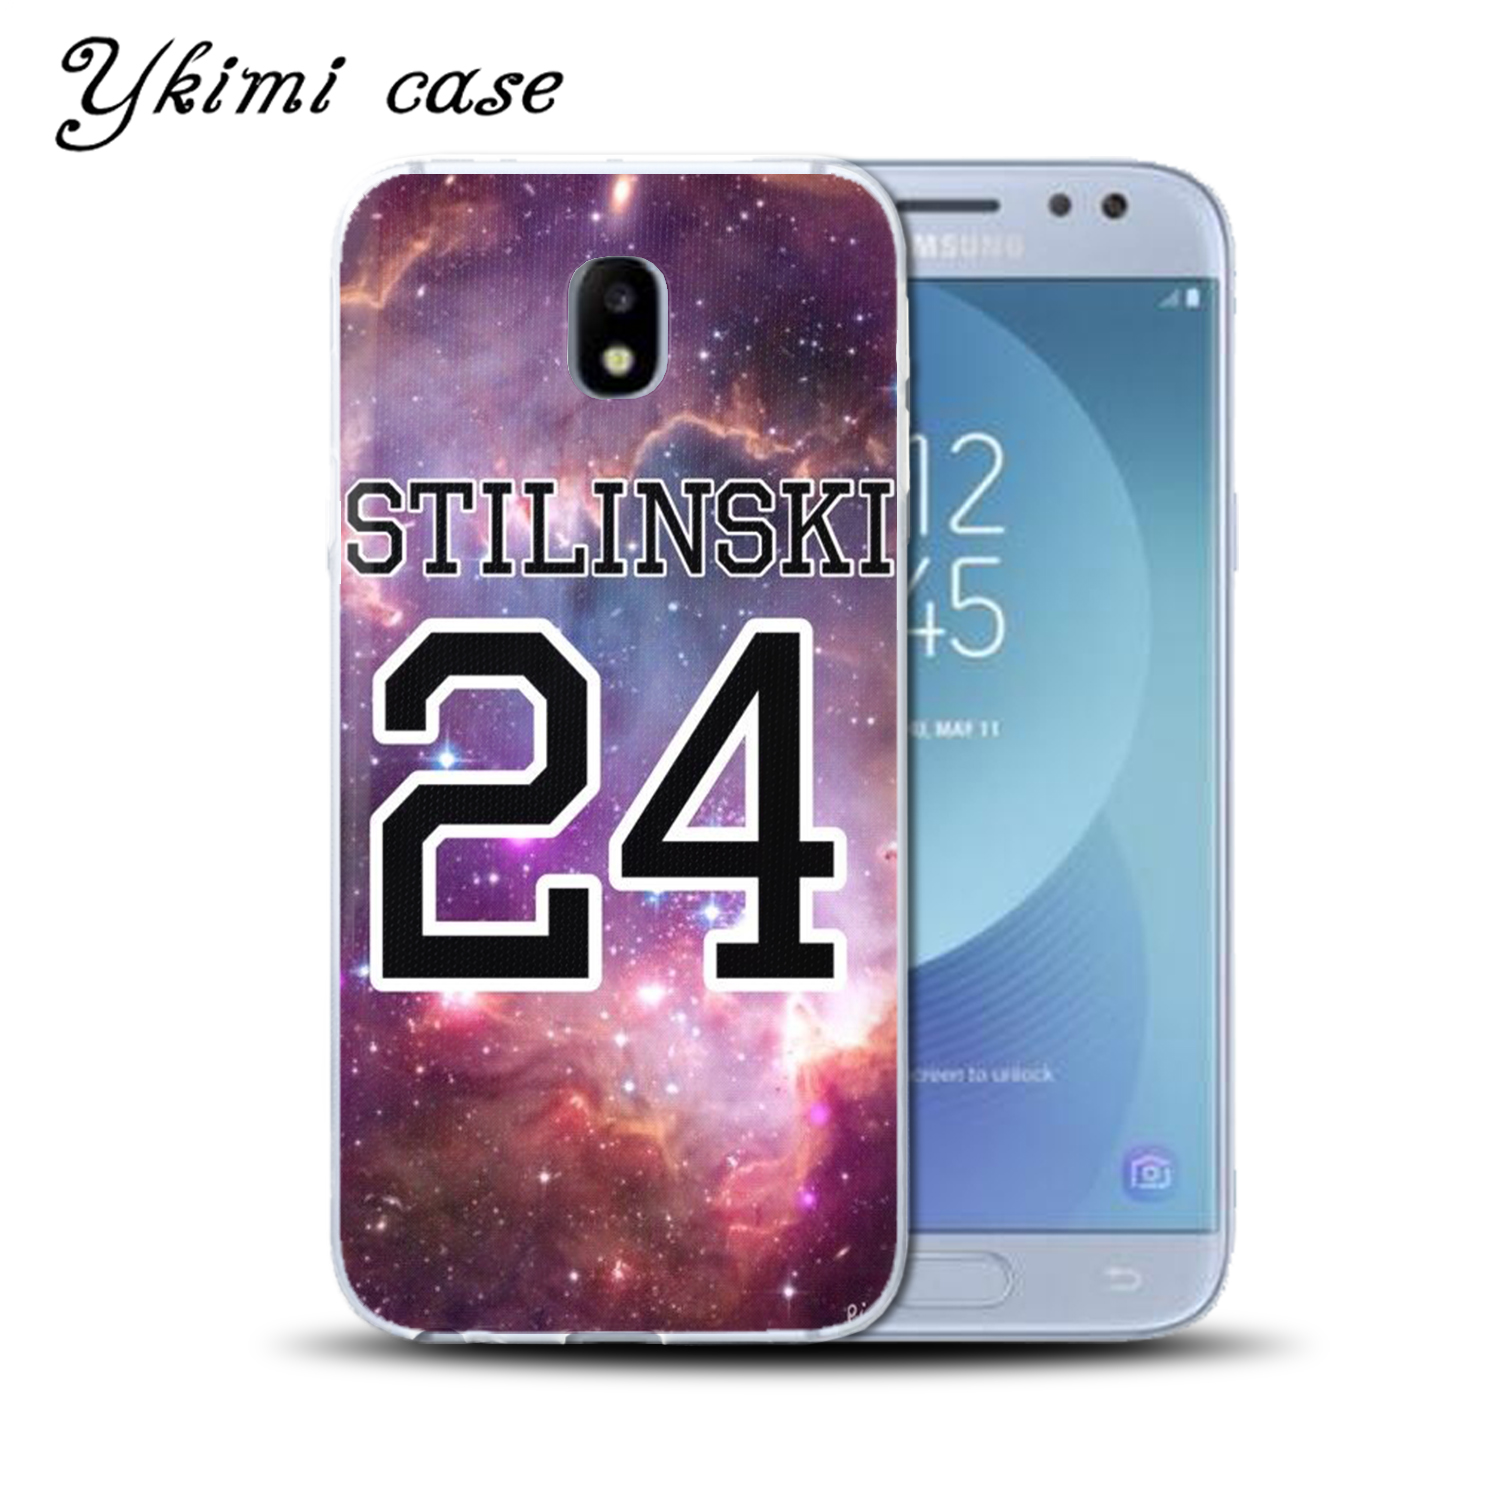 Aliexpress Buy For Samsung Galaxy J3 J5 J7 2017 J330 J530 J730 case Teen Wolf soft TPU cover transparent silicone phone capa from Reliable for samsung